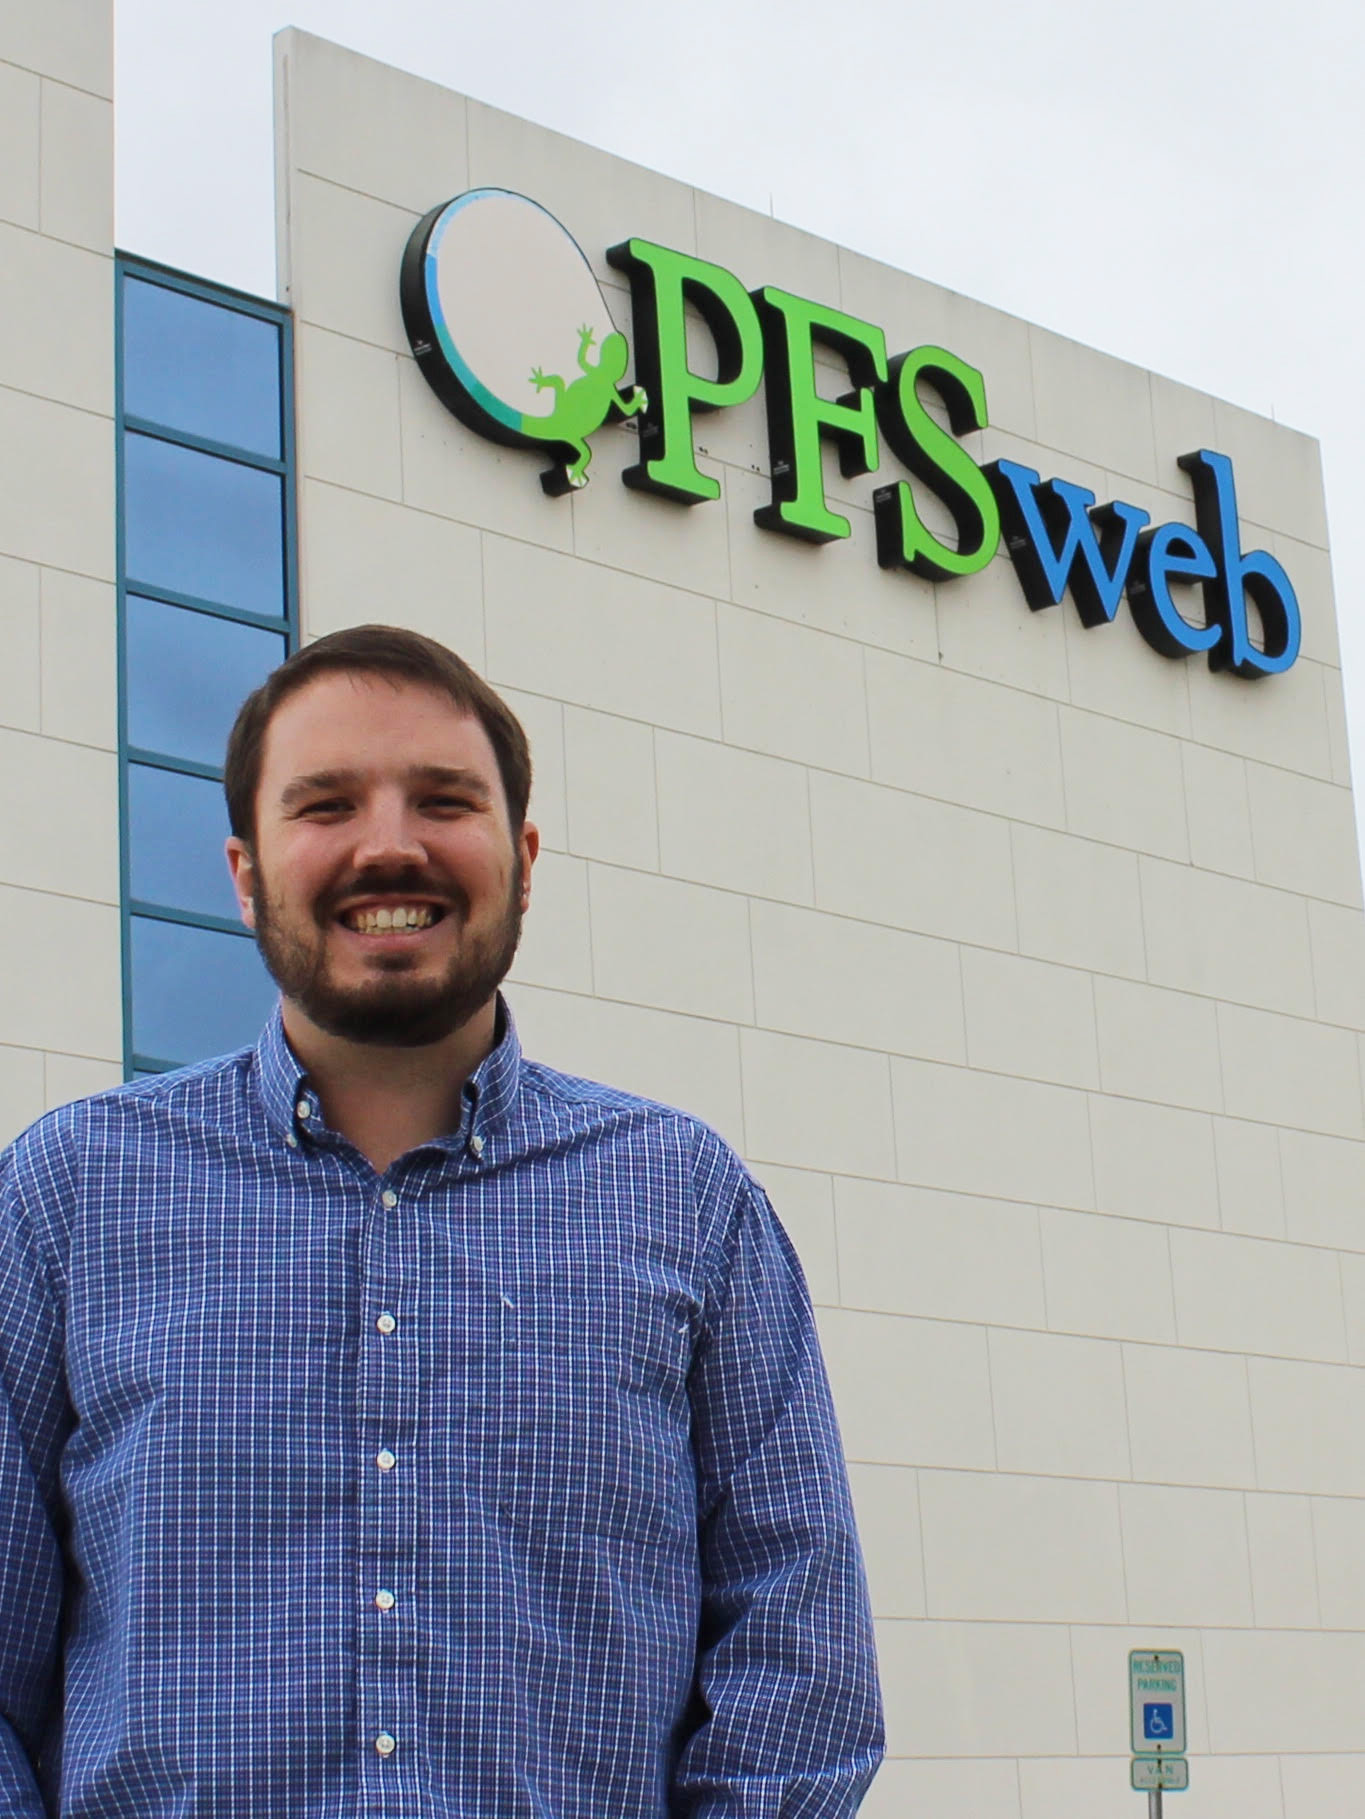 Chandler Harris graduated from ACU in 2012 and you can read more about his journey to PSFweb by clicking the